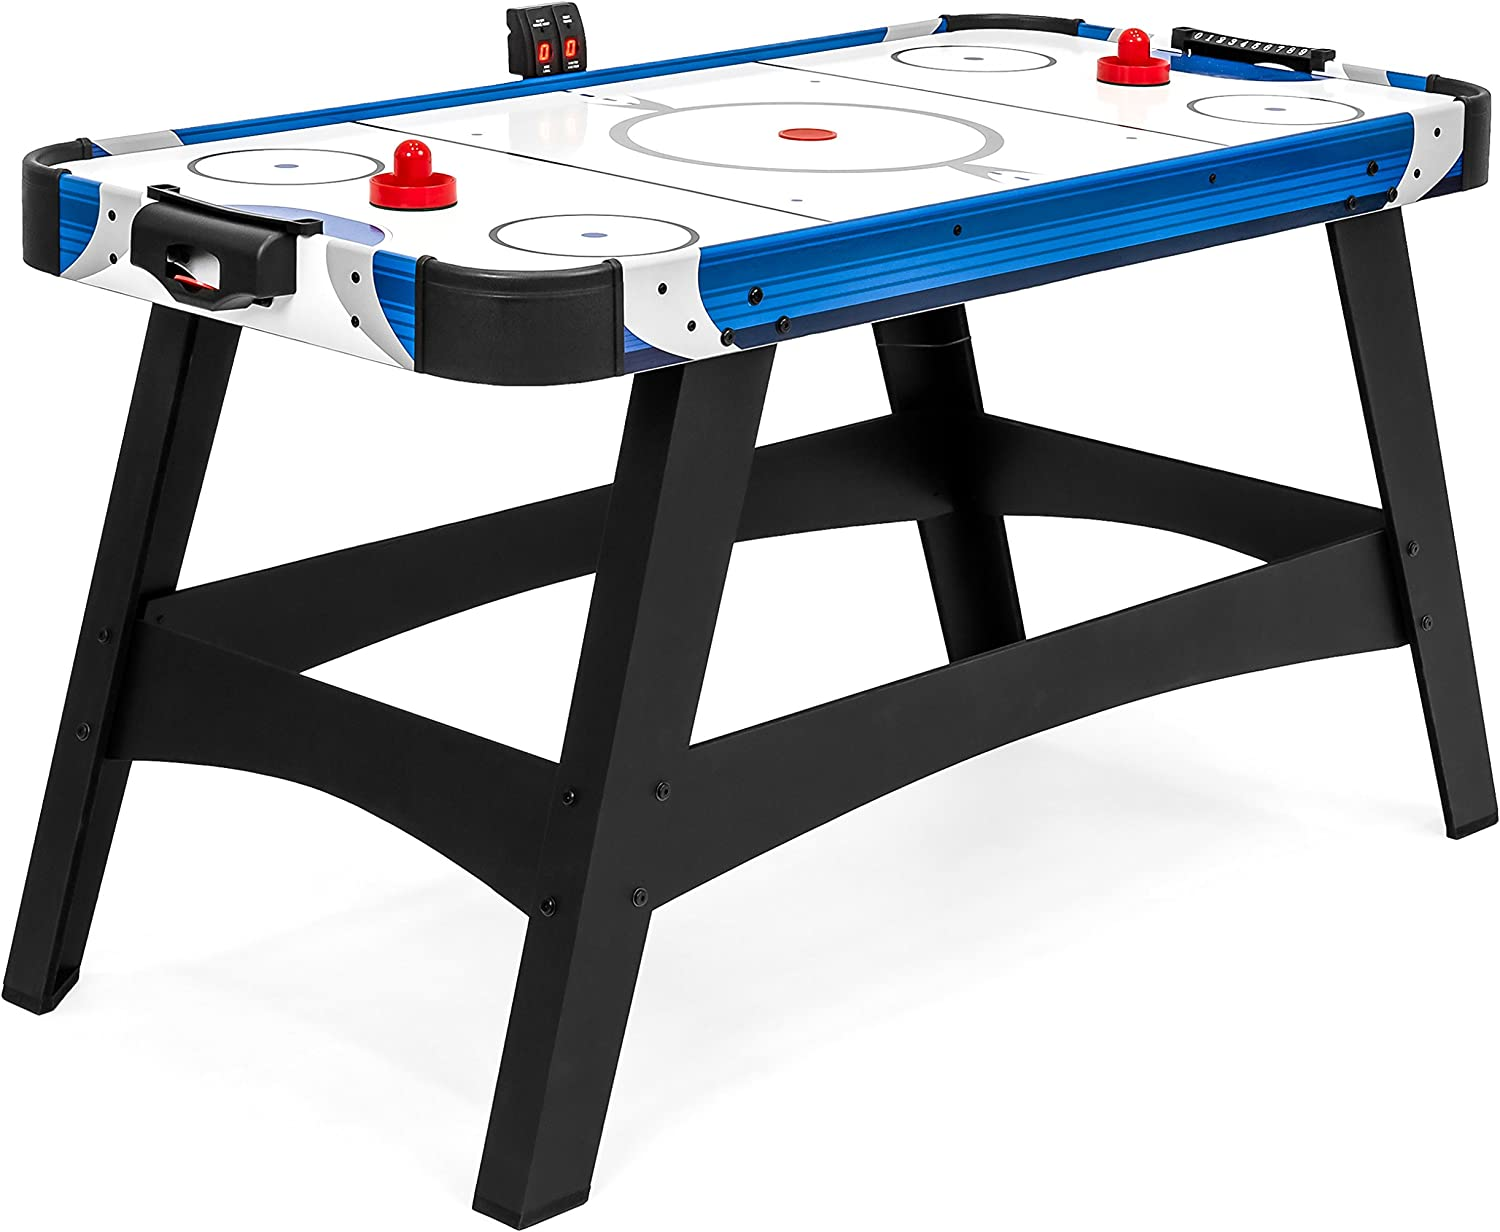 Top 10 Best Air Hockey Table for Kids (2020 Reviews & Guide) 9